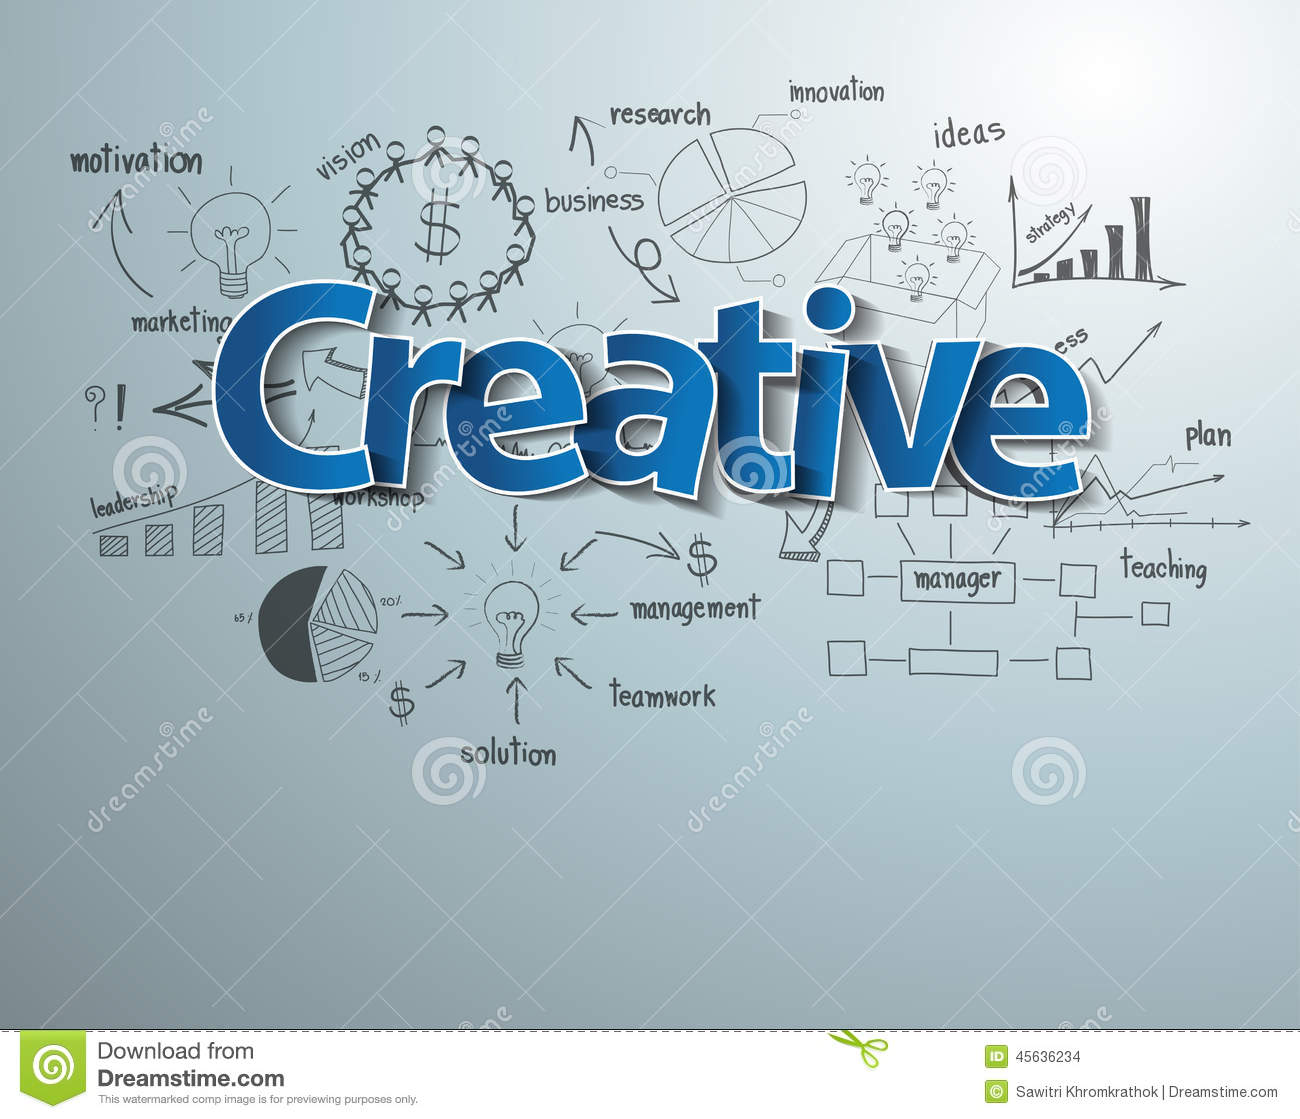 workflow diagram template 2002 mitsubishi lancer car radio stereo audio wiring vector creative text with drawing business success stock - image: 45636234